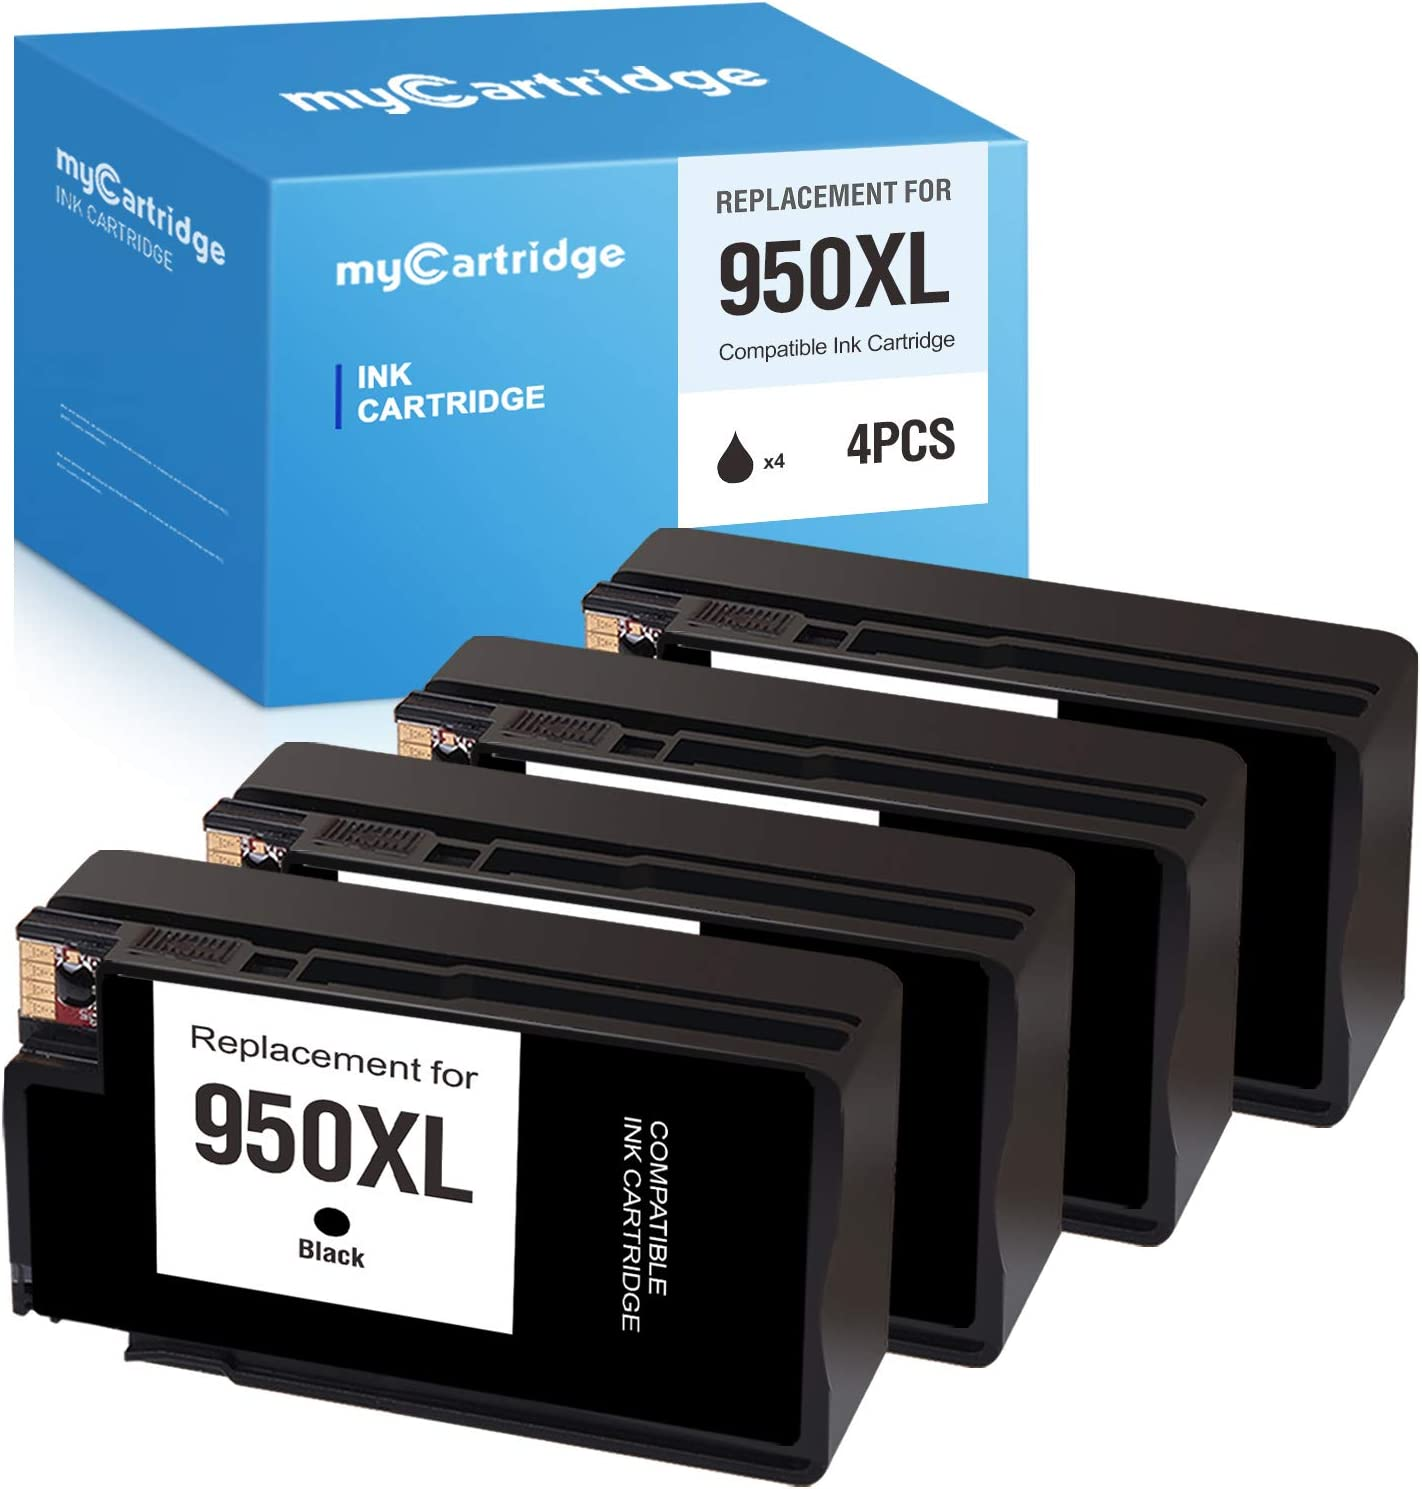 MYCARTRIDGE Compatible Ink Cartridge Replacement for HP 950 XL 950XL for OfficeJet Pro 8610 8600 8620 8100 8630 8615 8625 8640 8660 276dw 251dw 271dw (Black, 4-Pack)